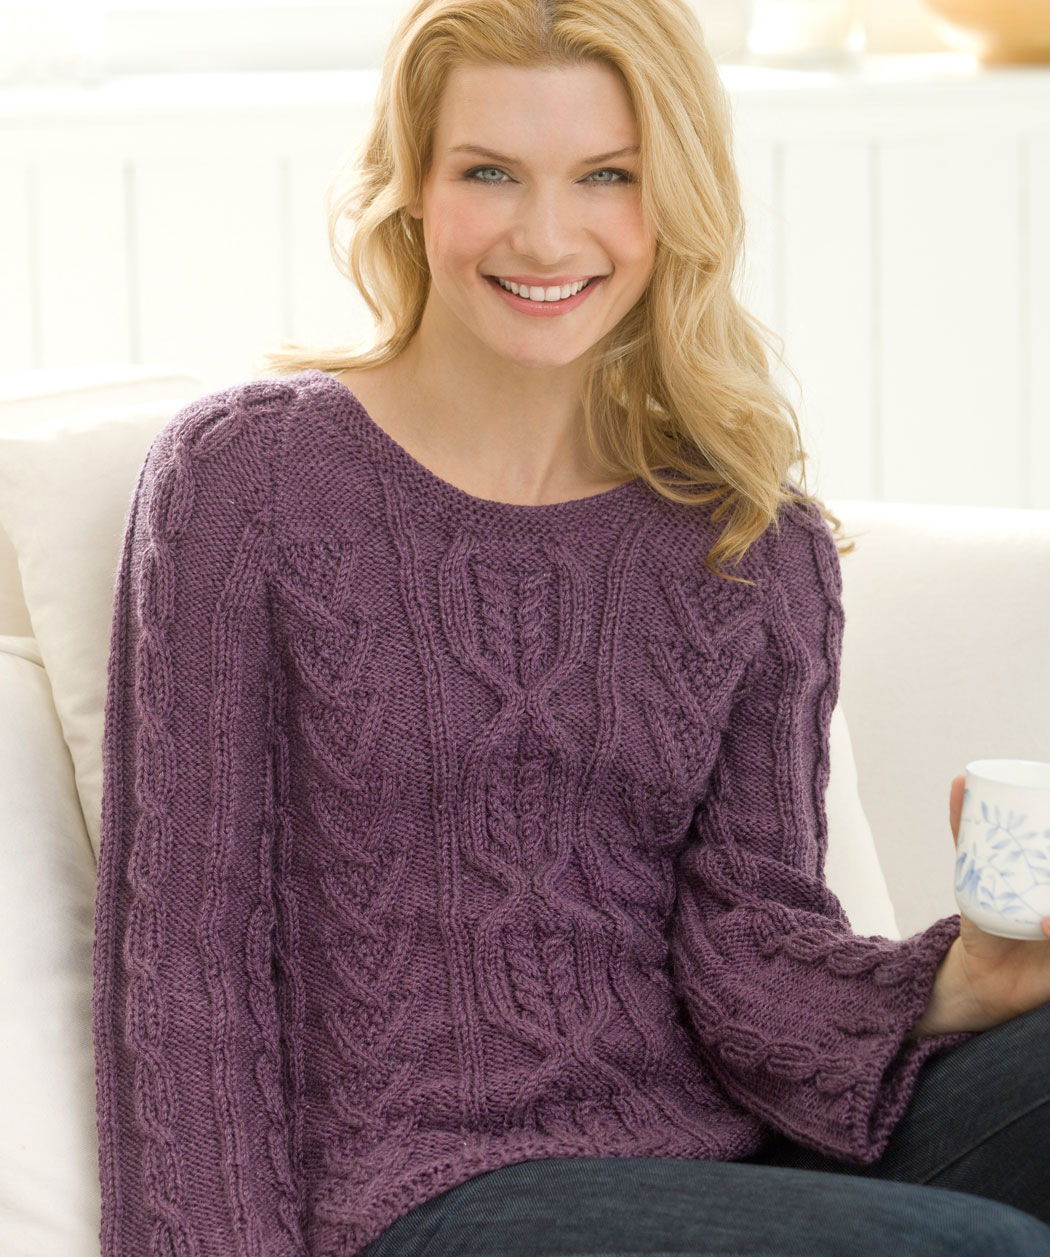 Knitting Patterns Sweater : Cable knit sweater patterns a knitting